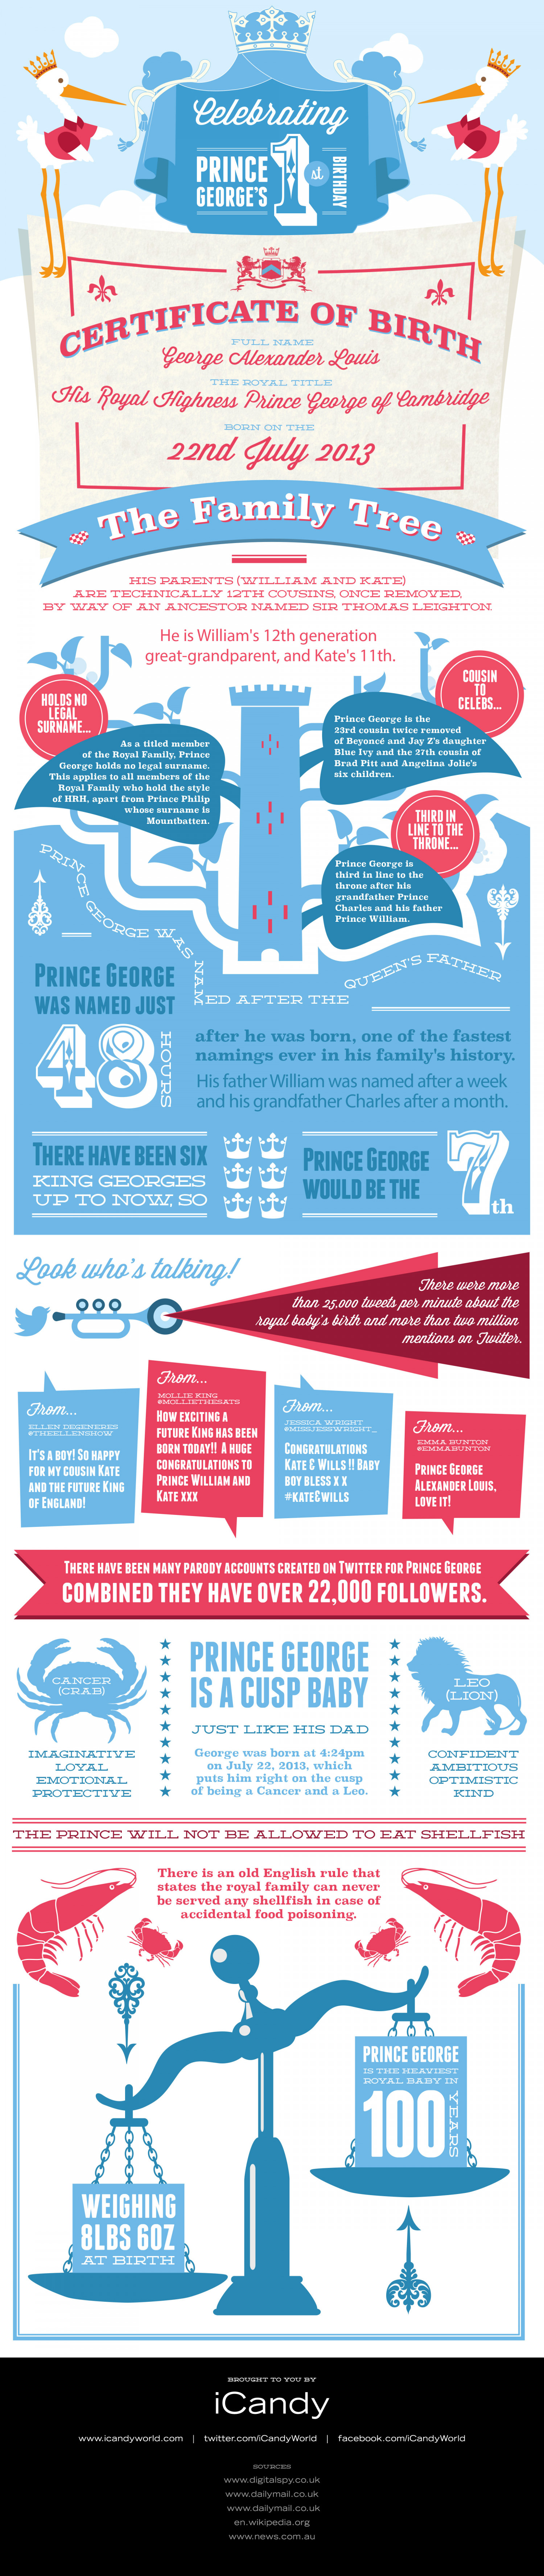 Happy Birthday Prince George! Infographic